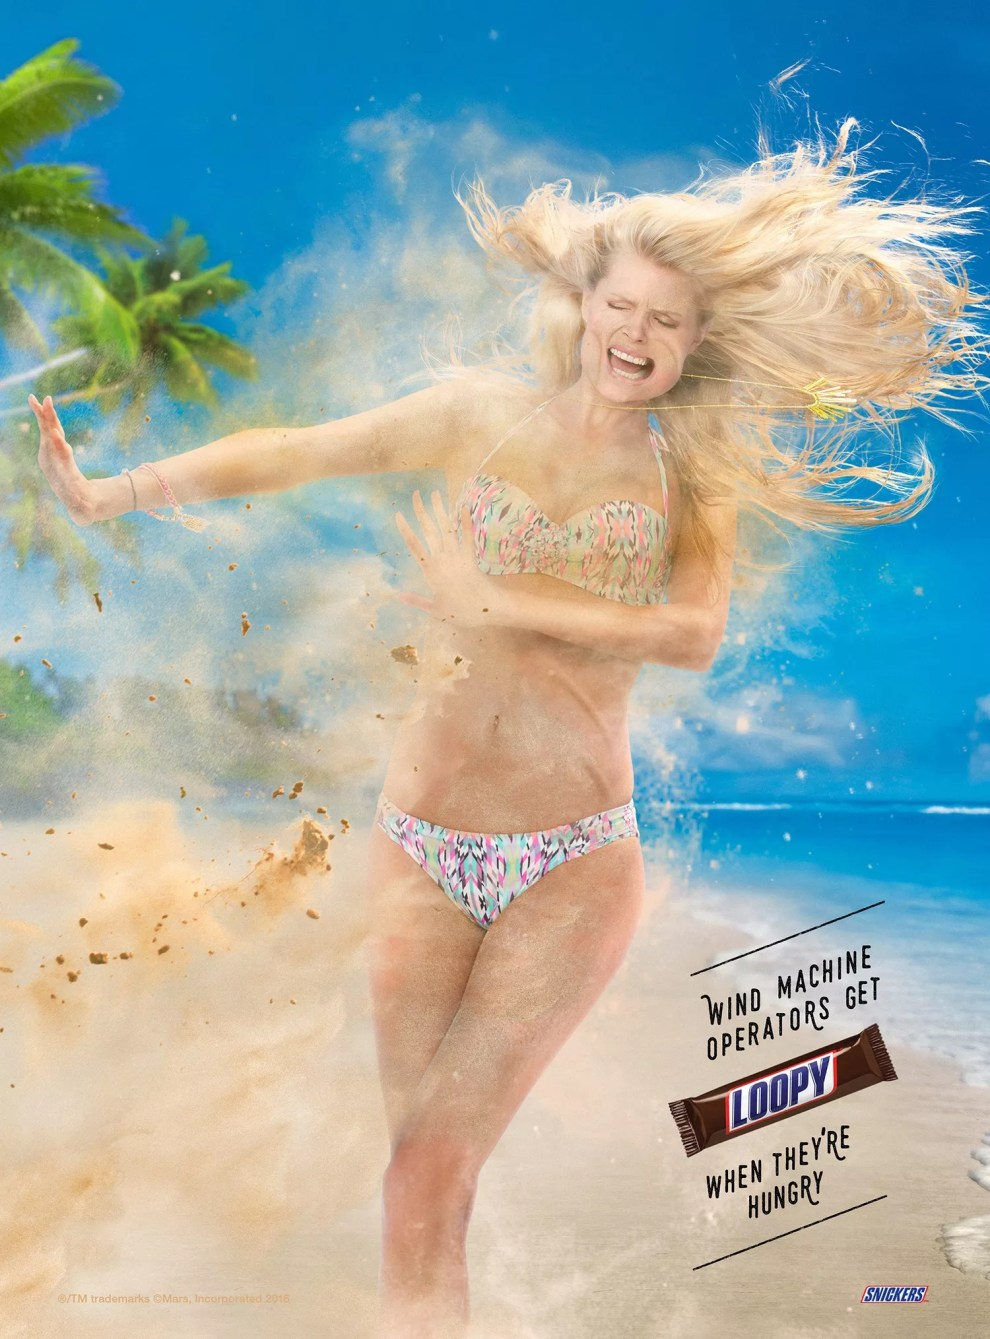 snickers-photoshop-fails-2